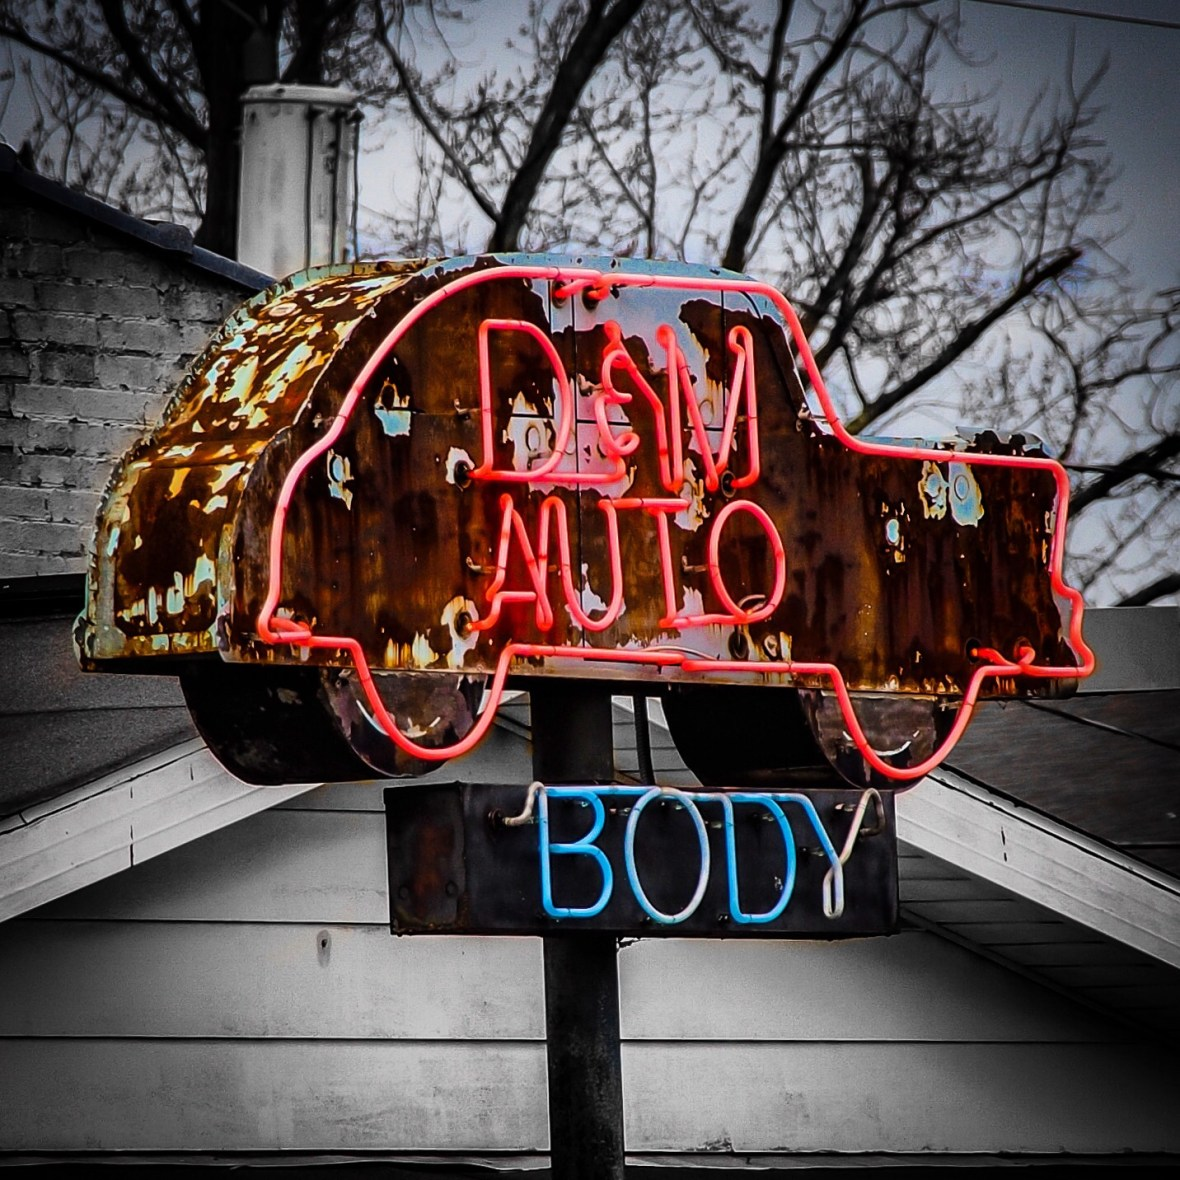 D and M Auto Body - Dover, Ohio U.S.A. - January 11, 2018